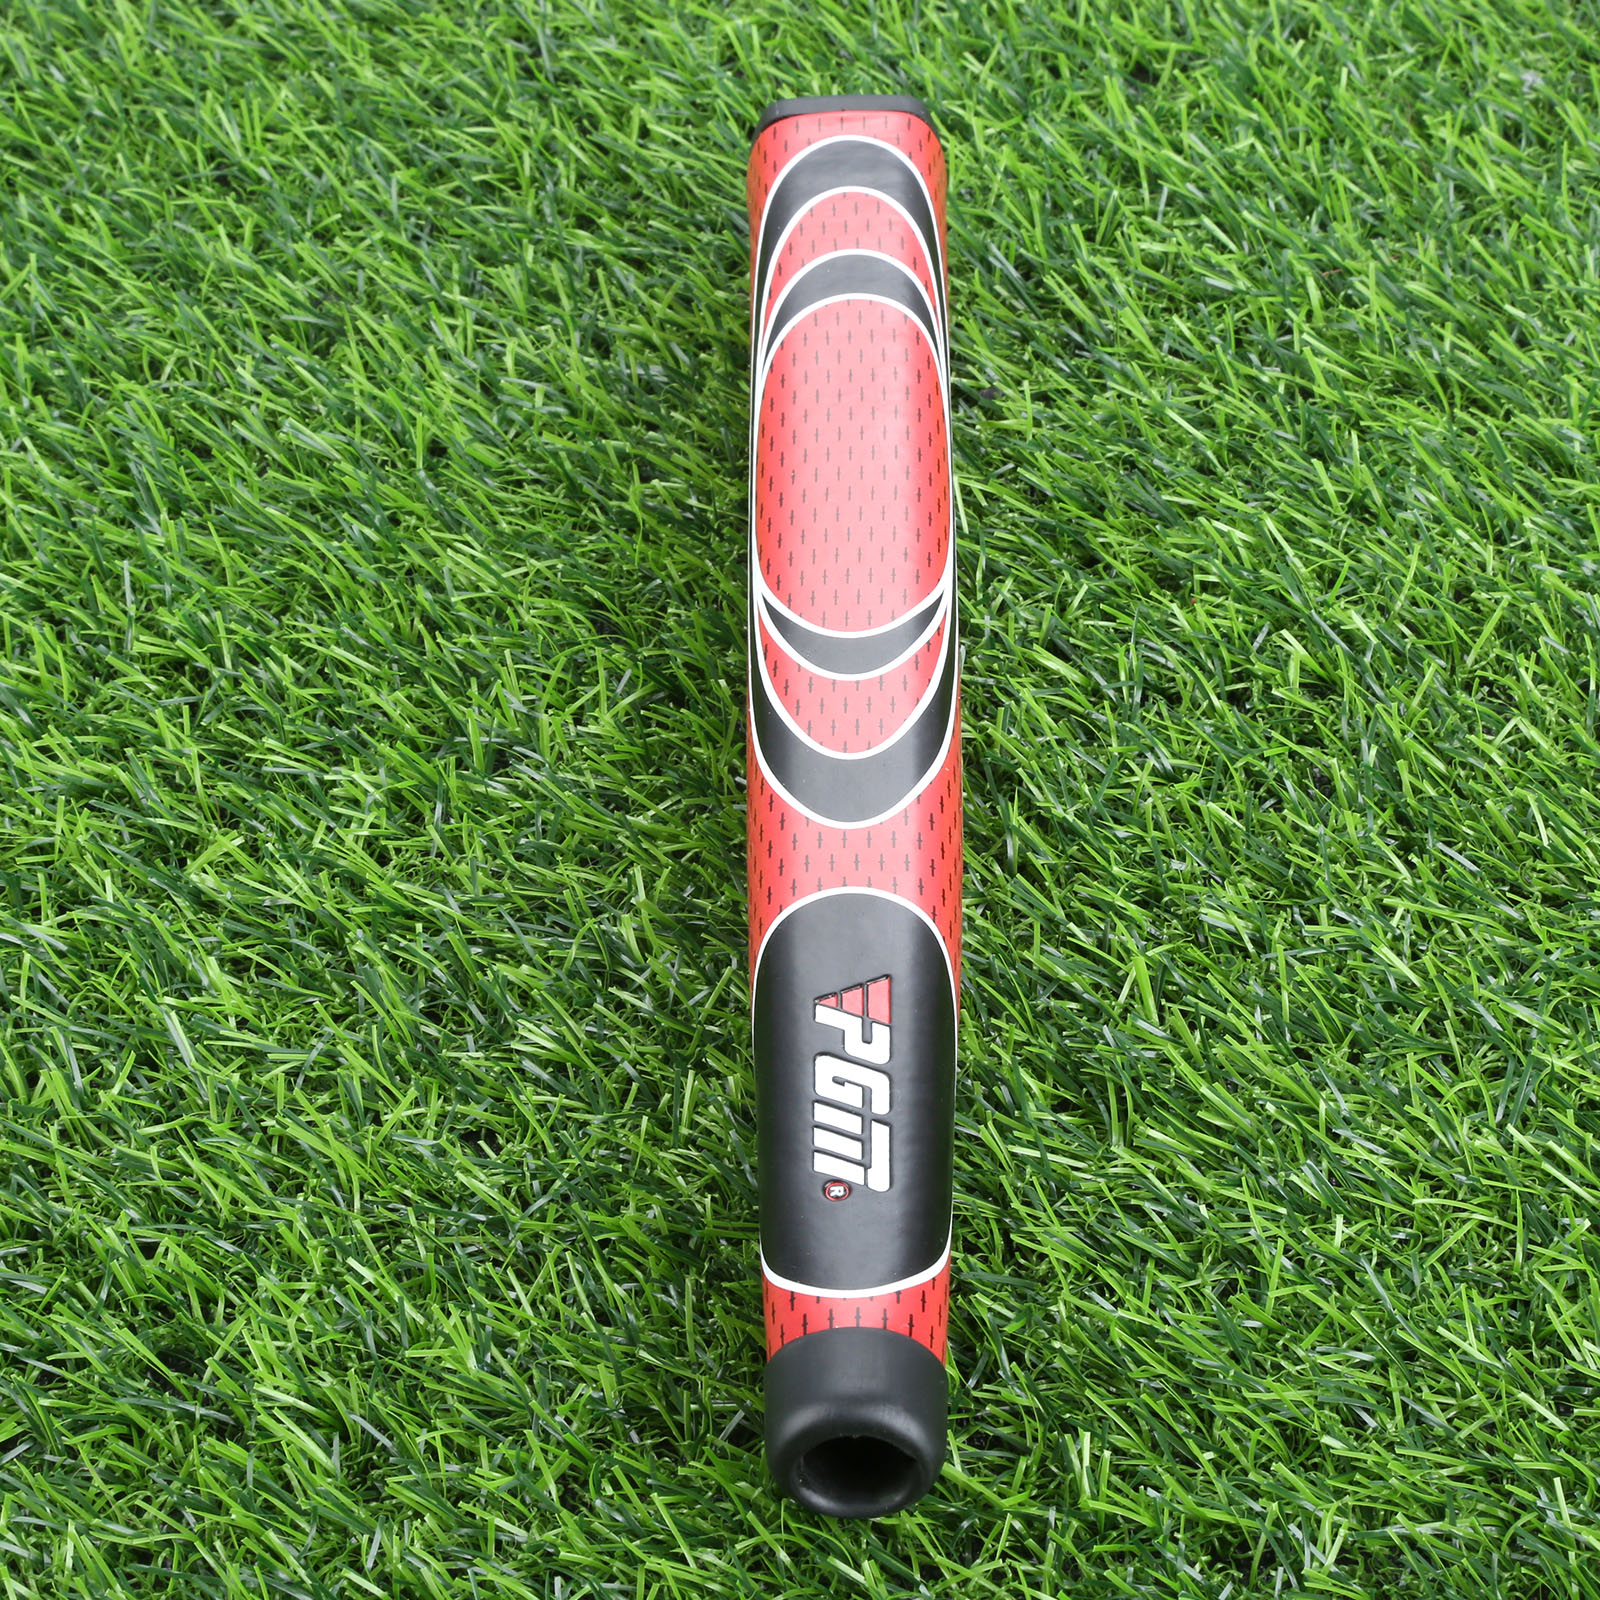 1 Pc High Quality Natural Rubber Golf Putter Grip Long Grip Sweat-absorbent And Durable Golf Club Grips Size 10.23 Inch 260mm